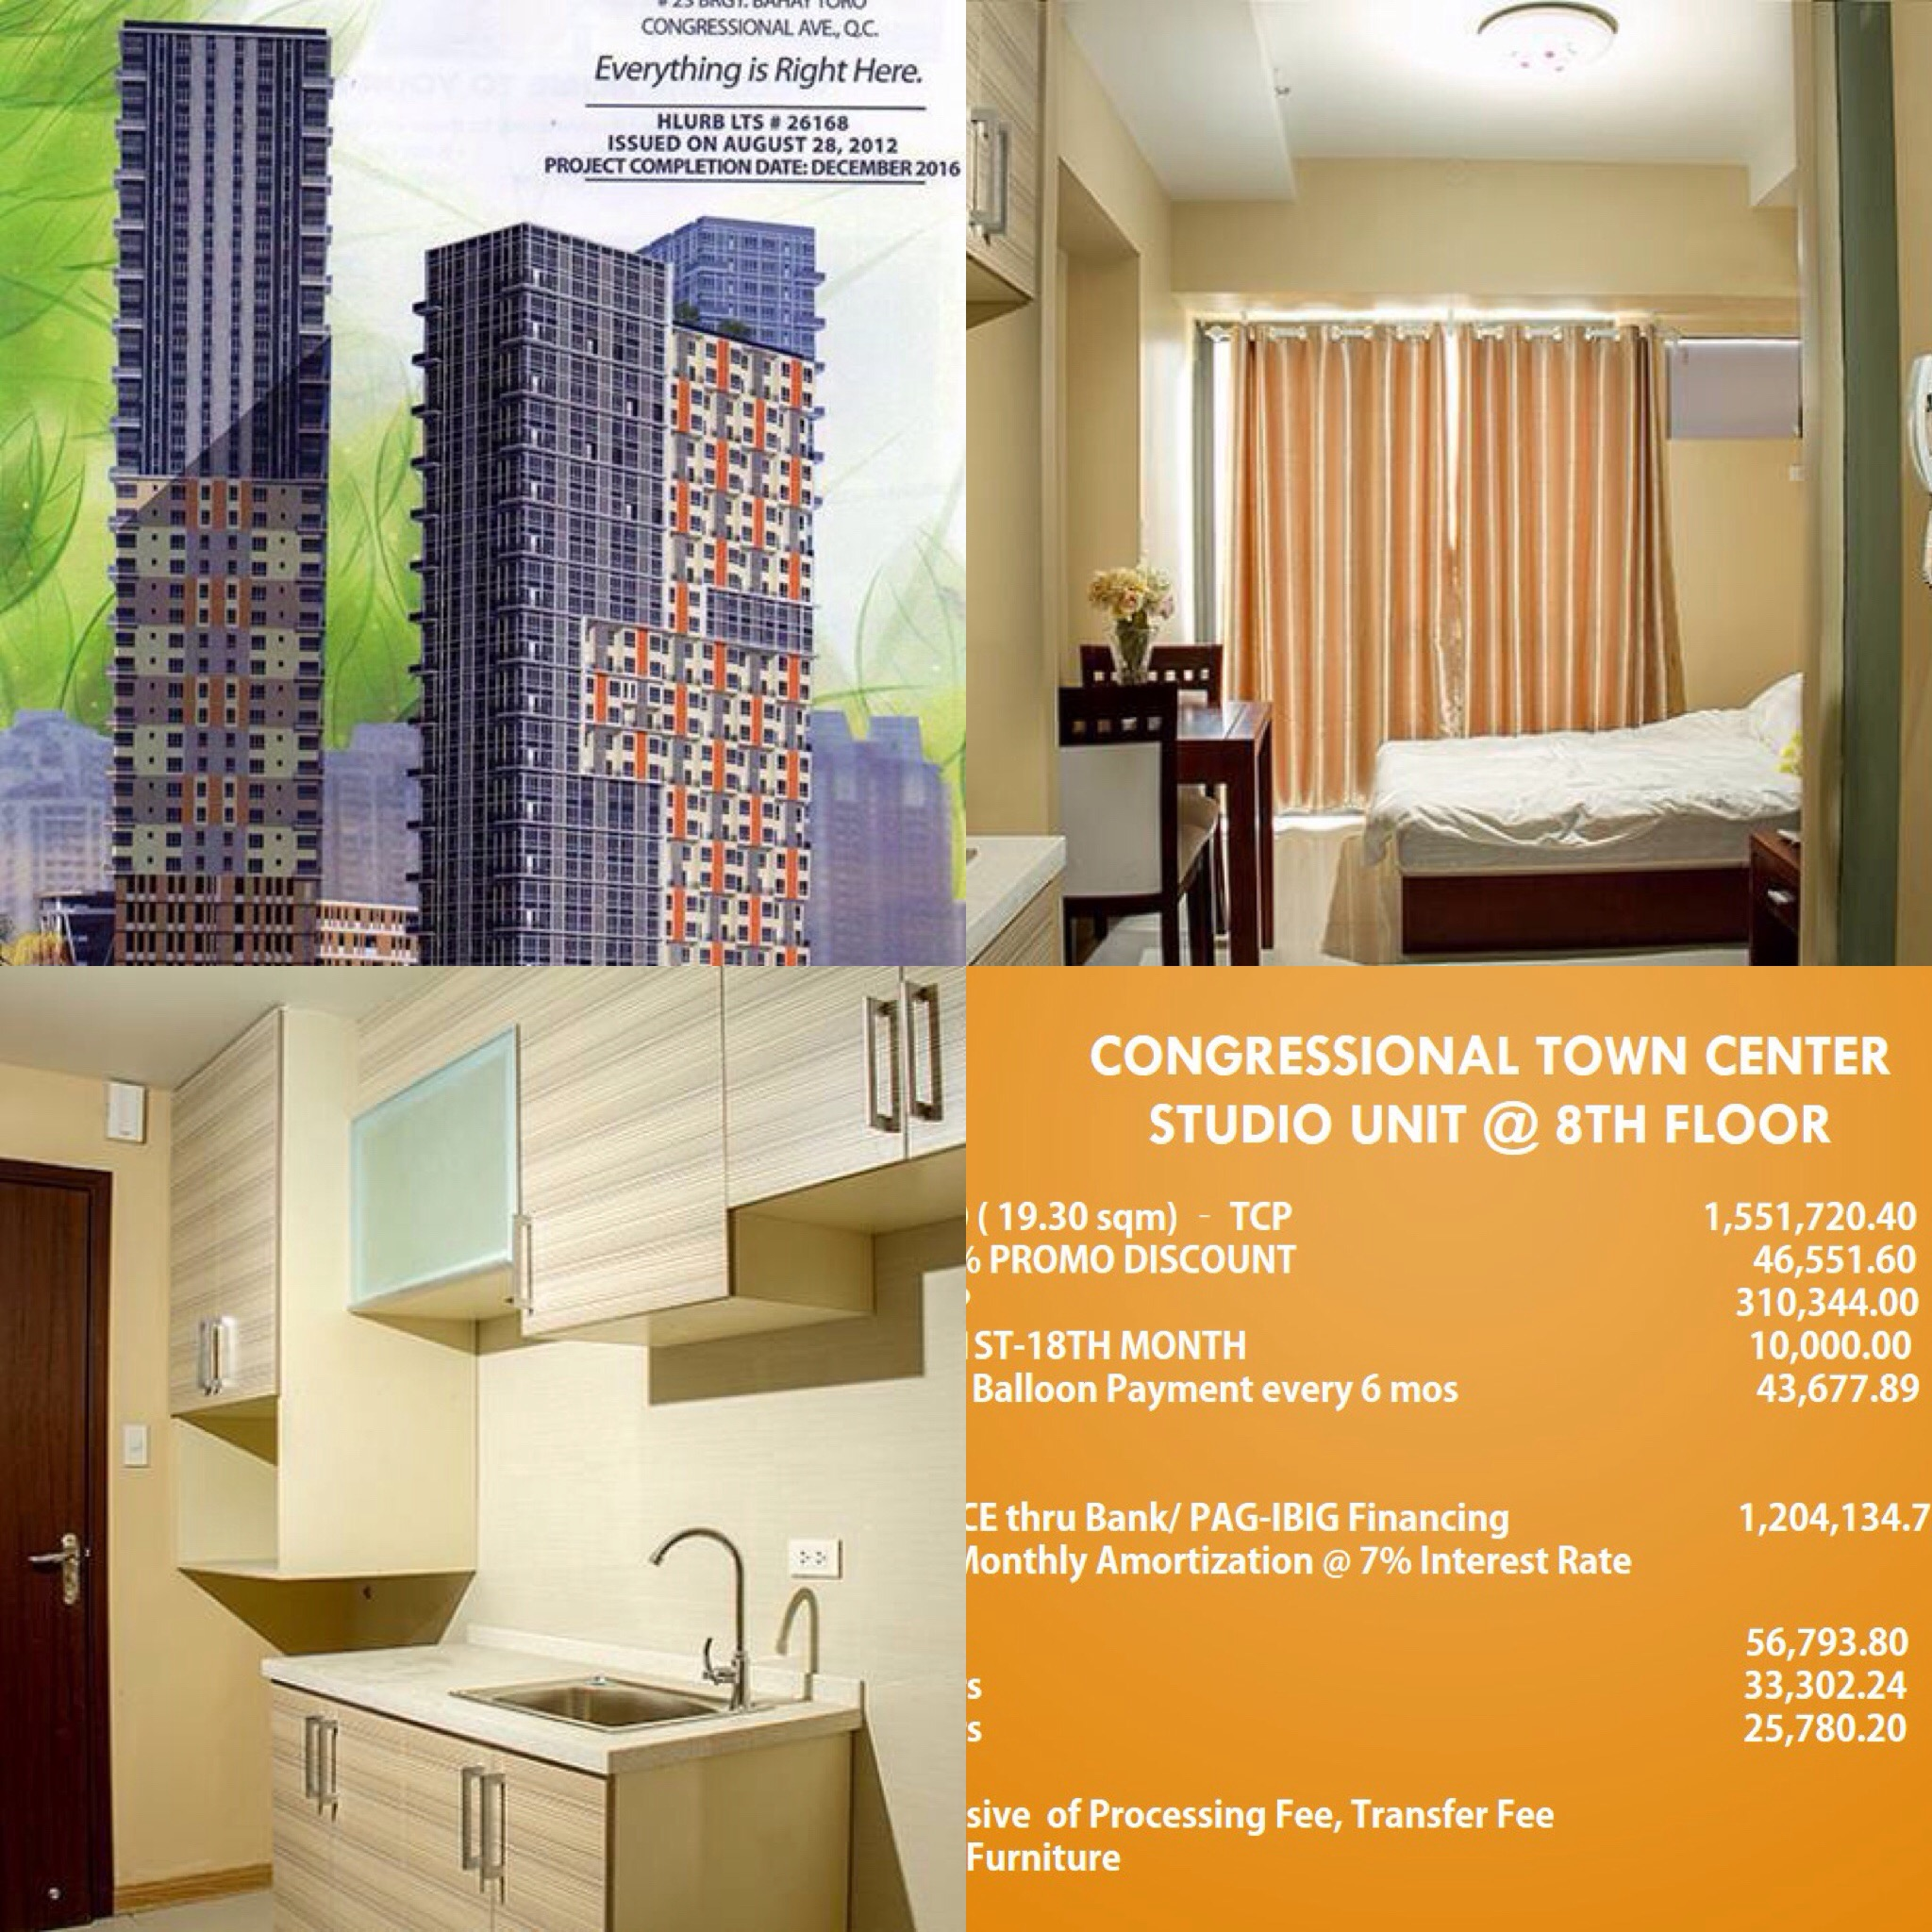 rent to own condo qc 09176747343 rico navarro